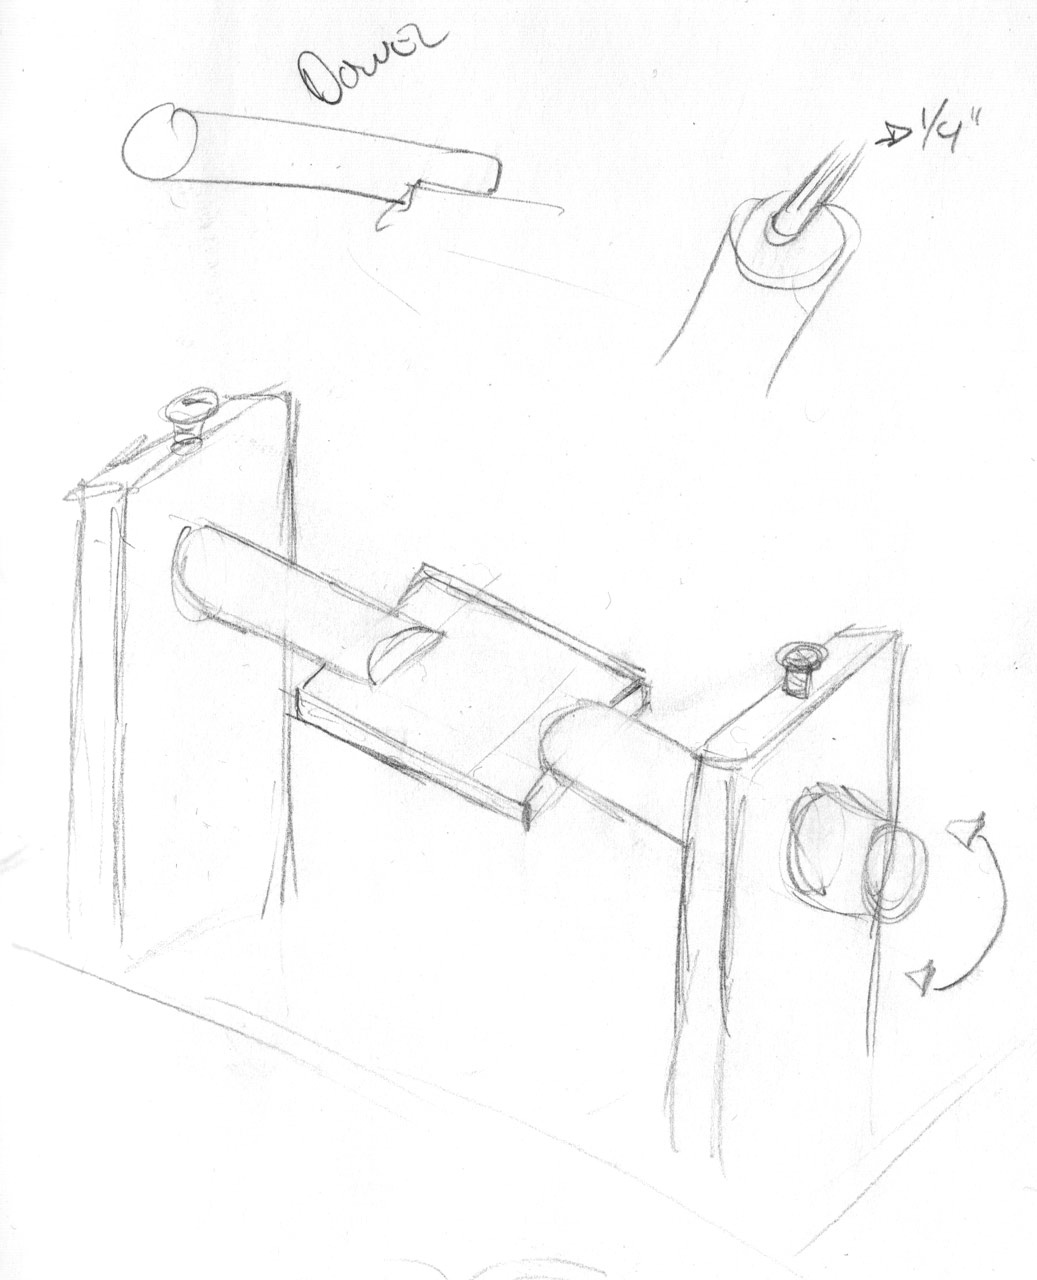 Sketch - Spooling handle